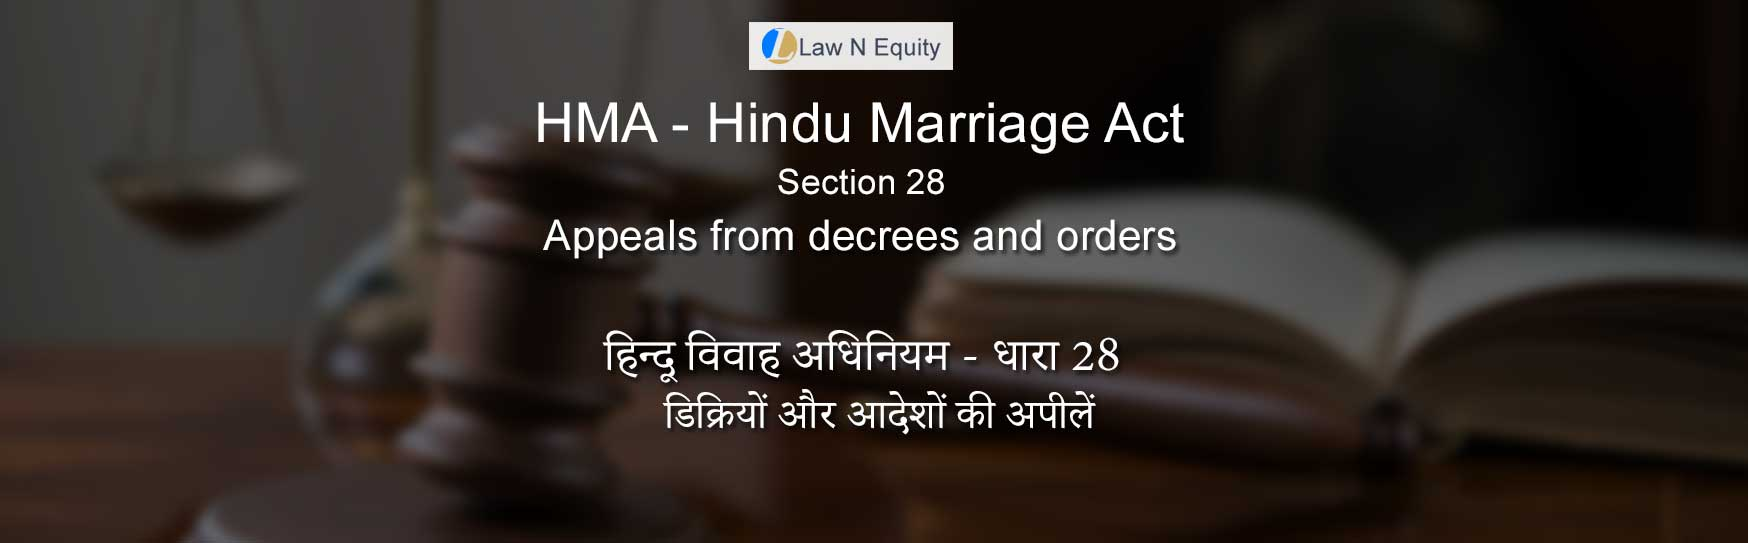 Hindu Marriage Act(HMA) Section 28